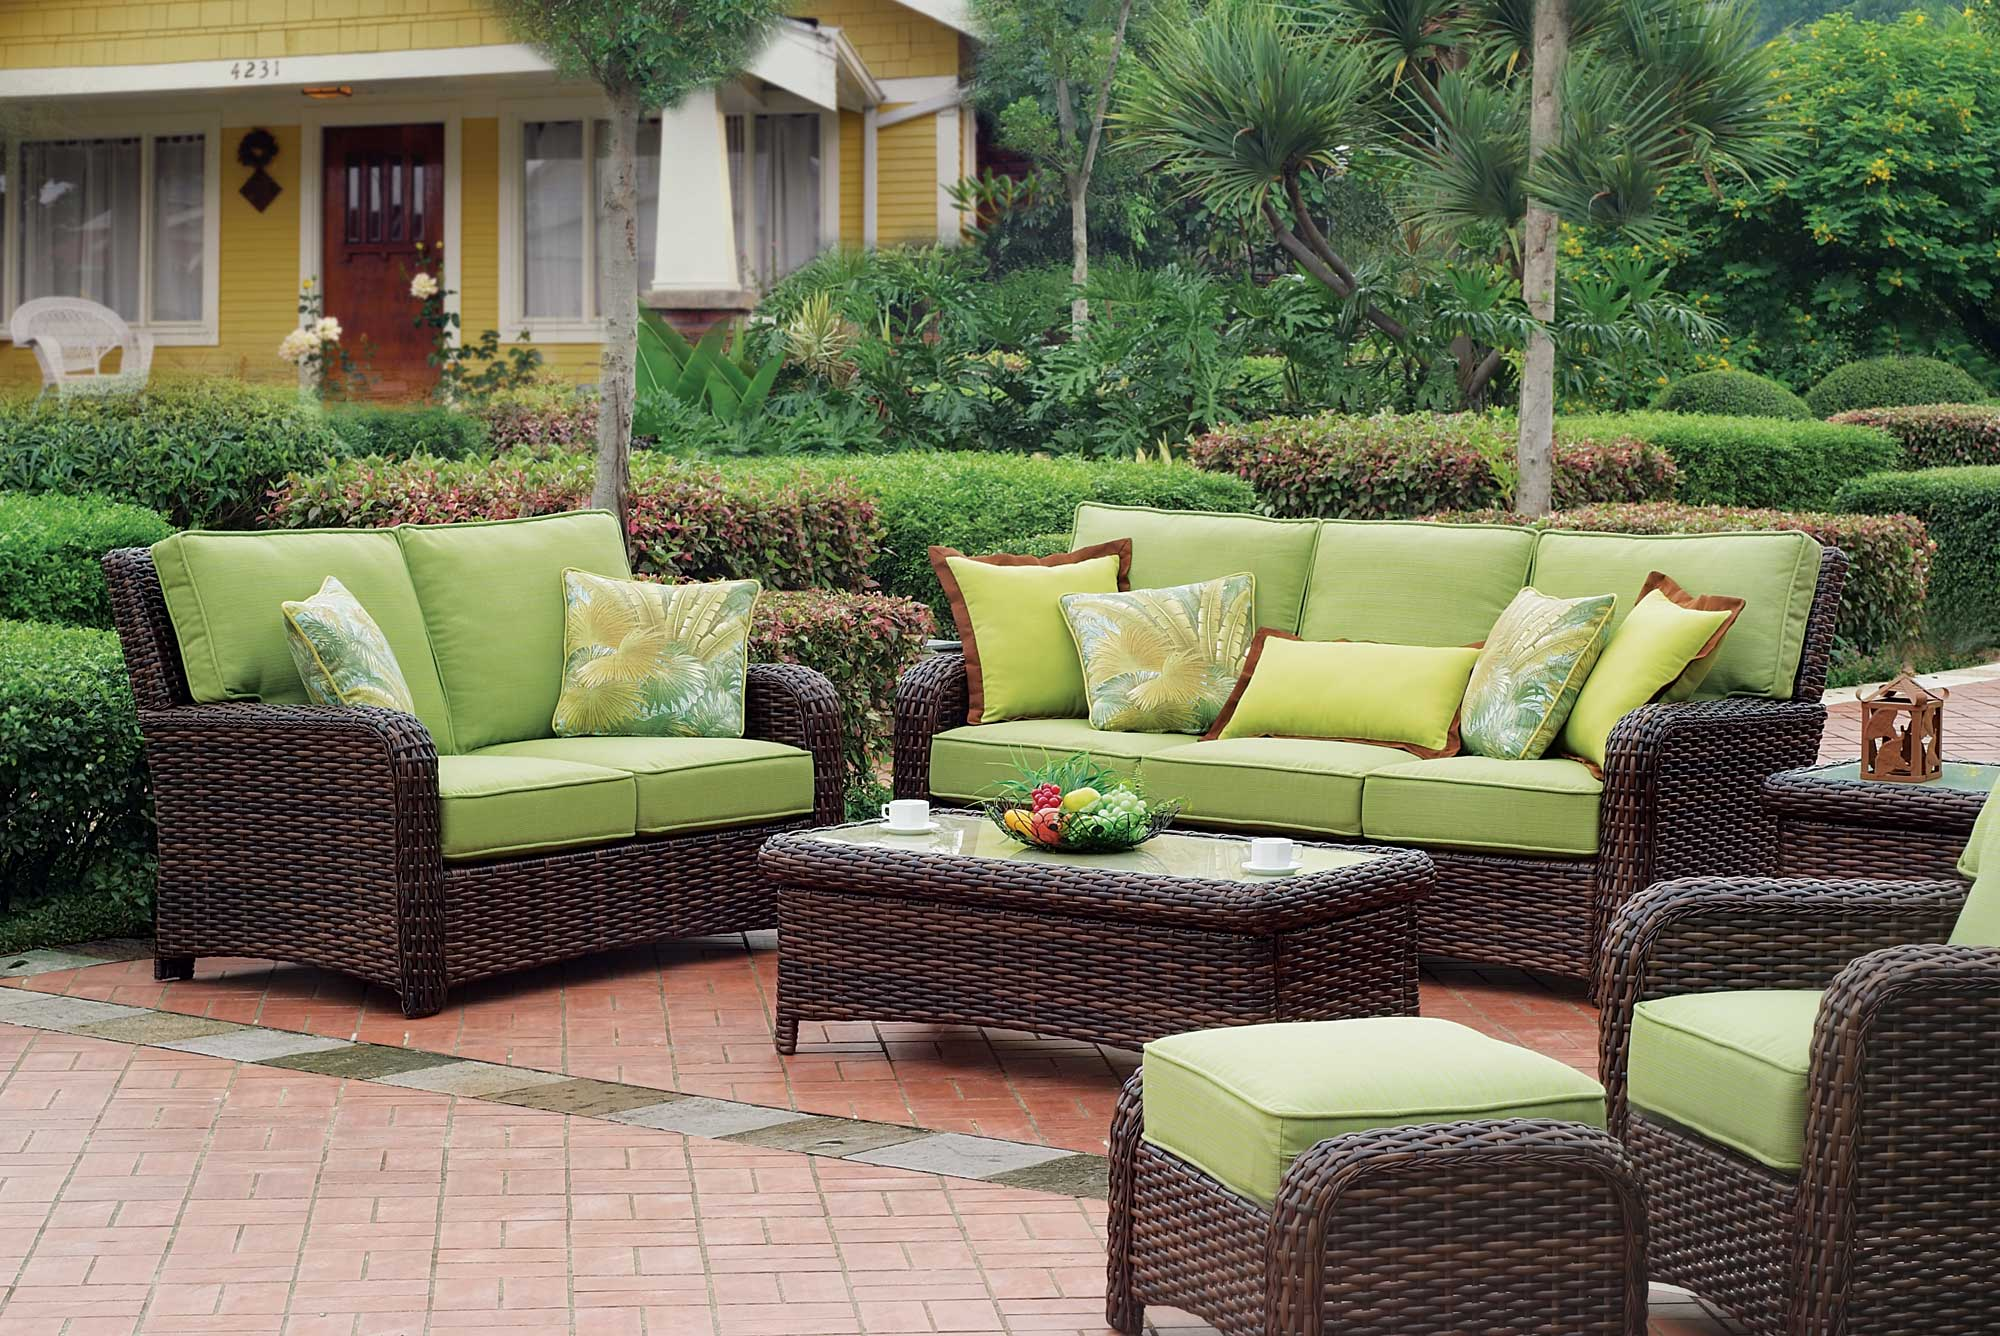 outdoor wicker furniture outdoor living: tips for keeping your rattan furniture looking new - the  fashionable housewife SBBIXRU